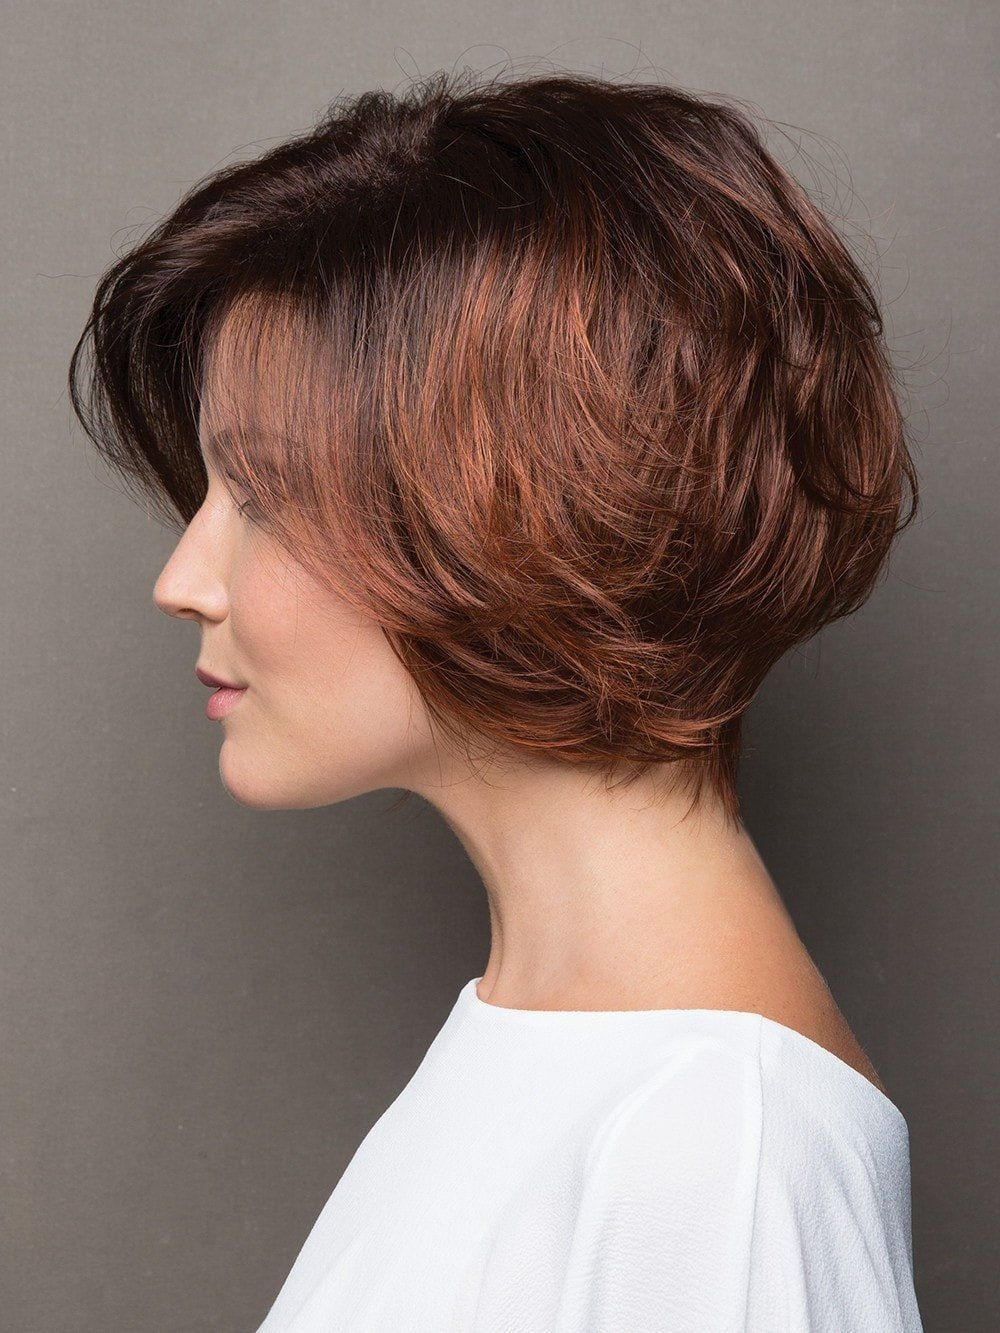 Dolce Synthetic Wig Traditional Cap Haircut For Thick Hair Wavy Bob Hairstyles Bob Hairstyles